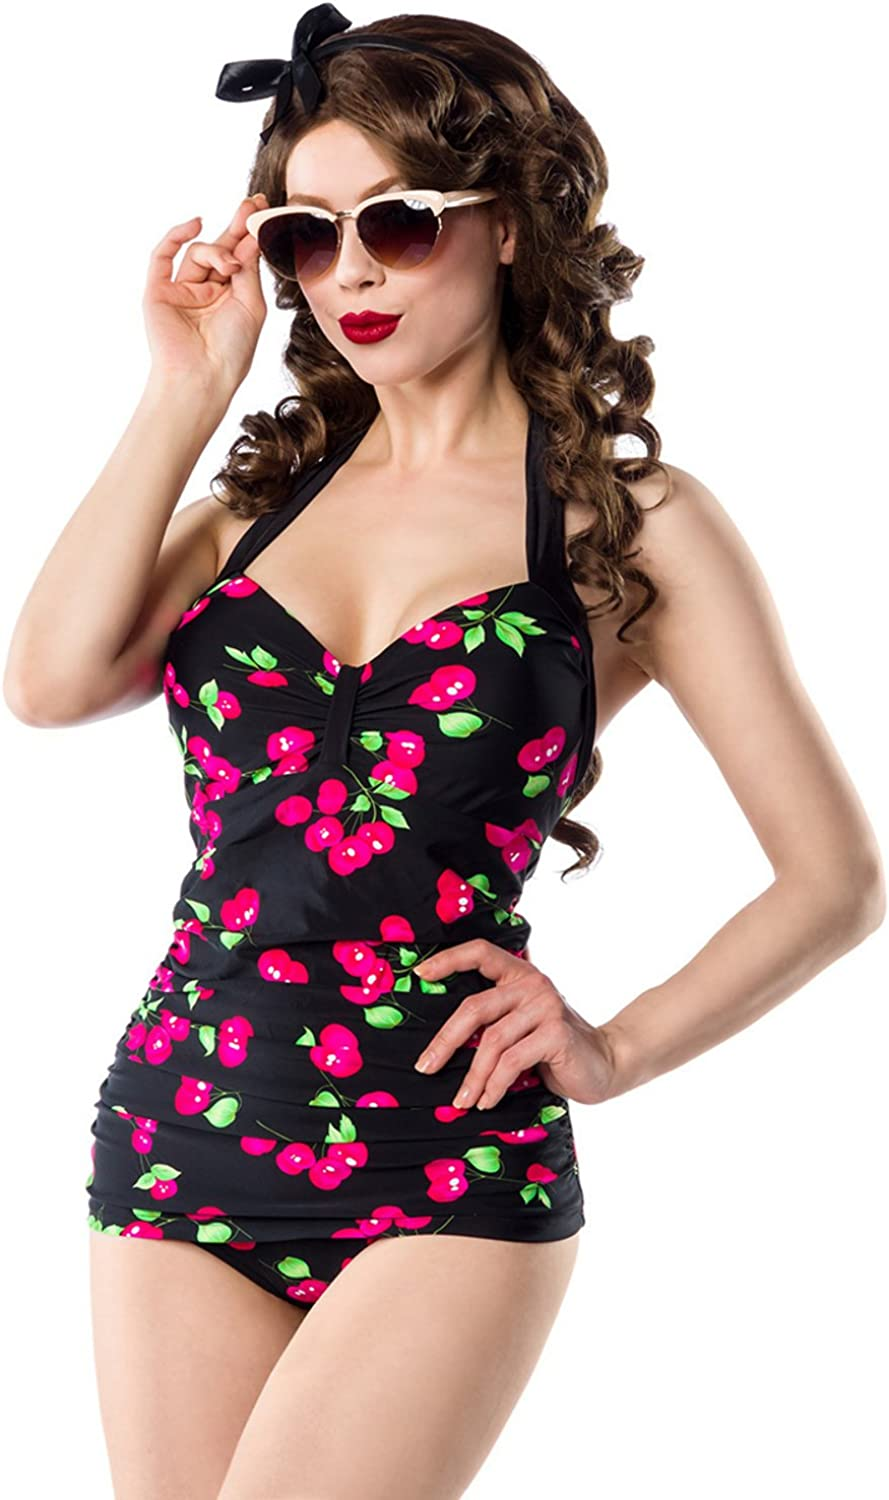 Vintage Swimsuit with Cherry Pattern of Belsira